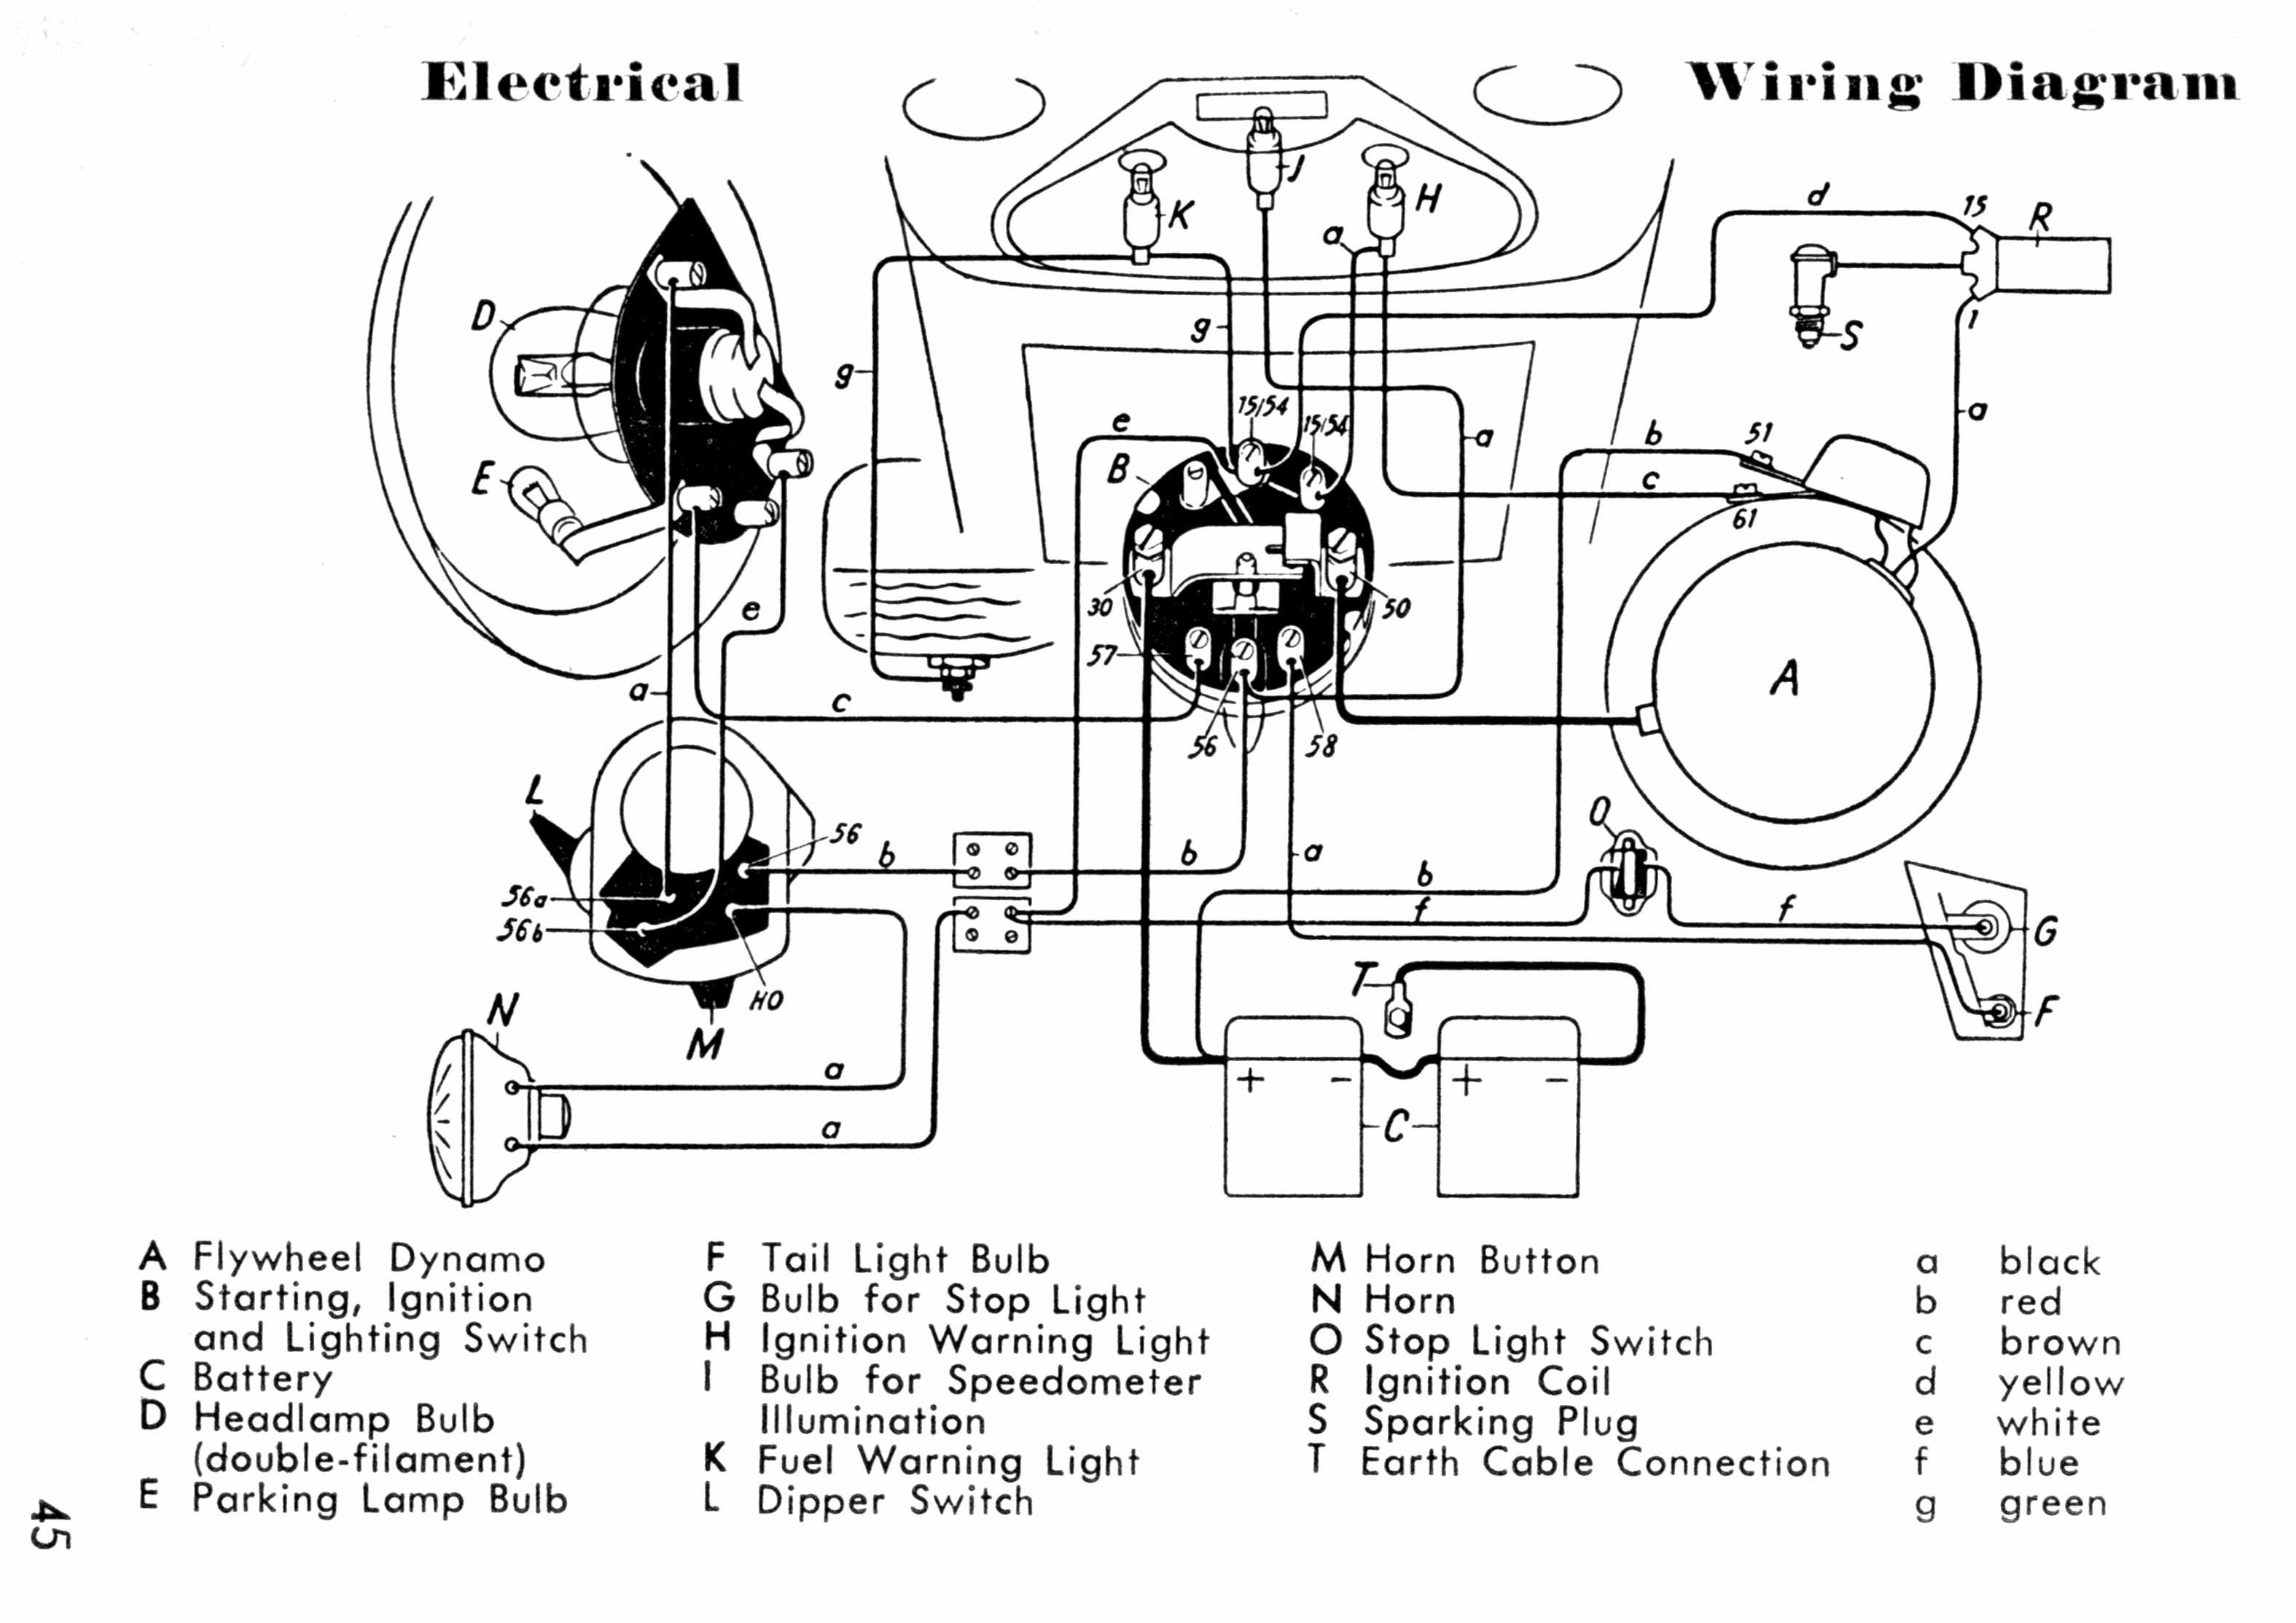 Vespa Battery Fuse Box Diagram Wiring Libraries Schematic Electric Scooter Closet Pinterest